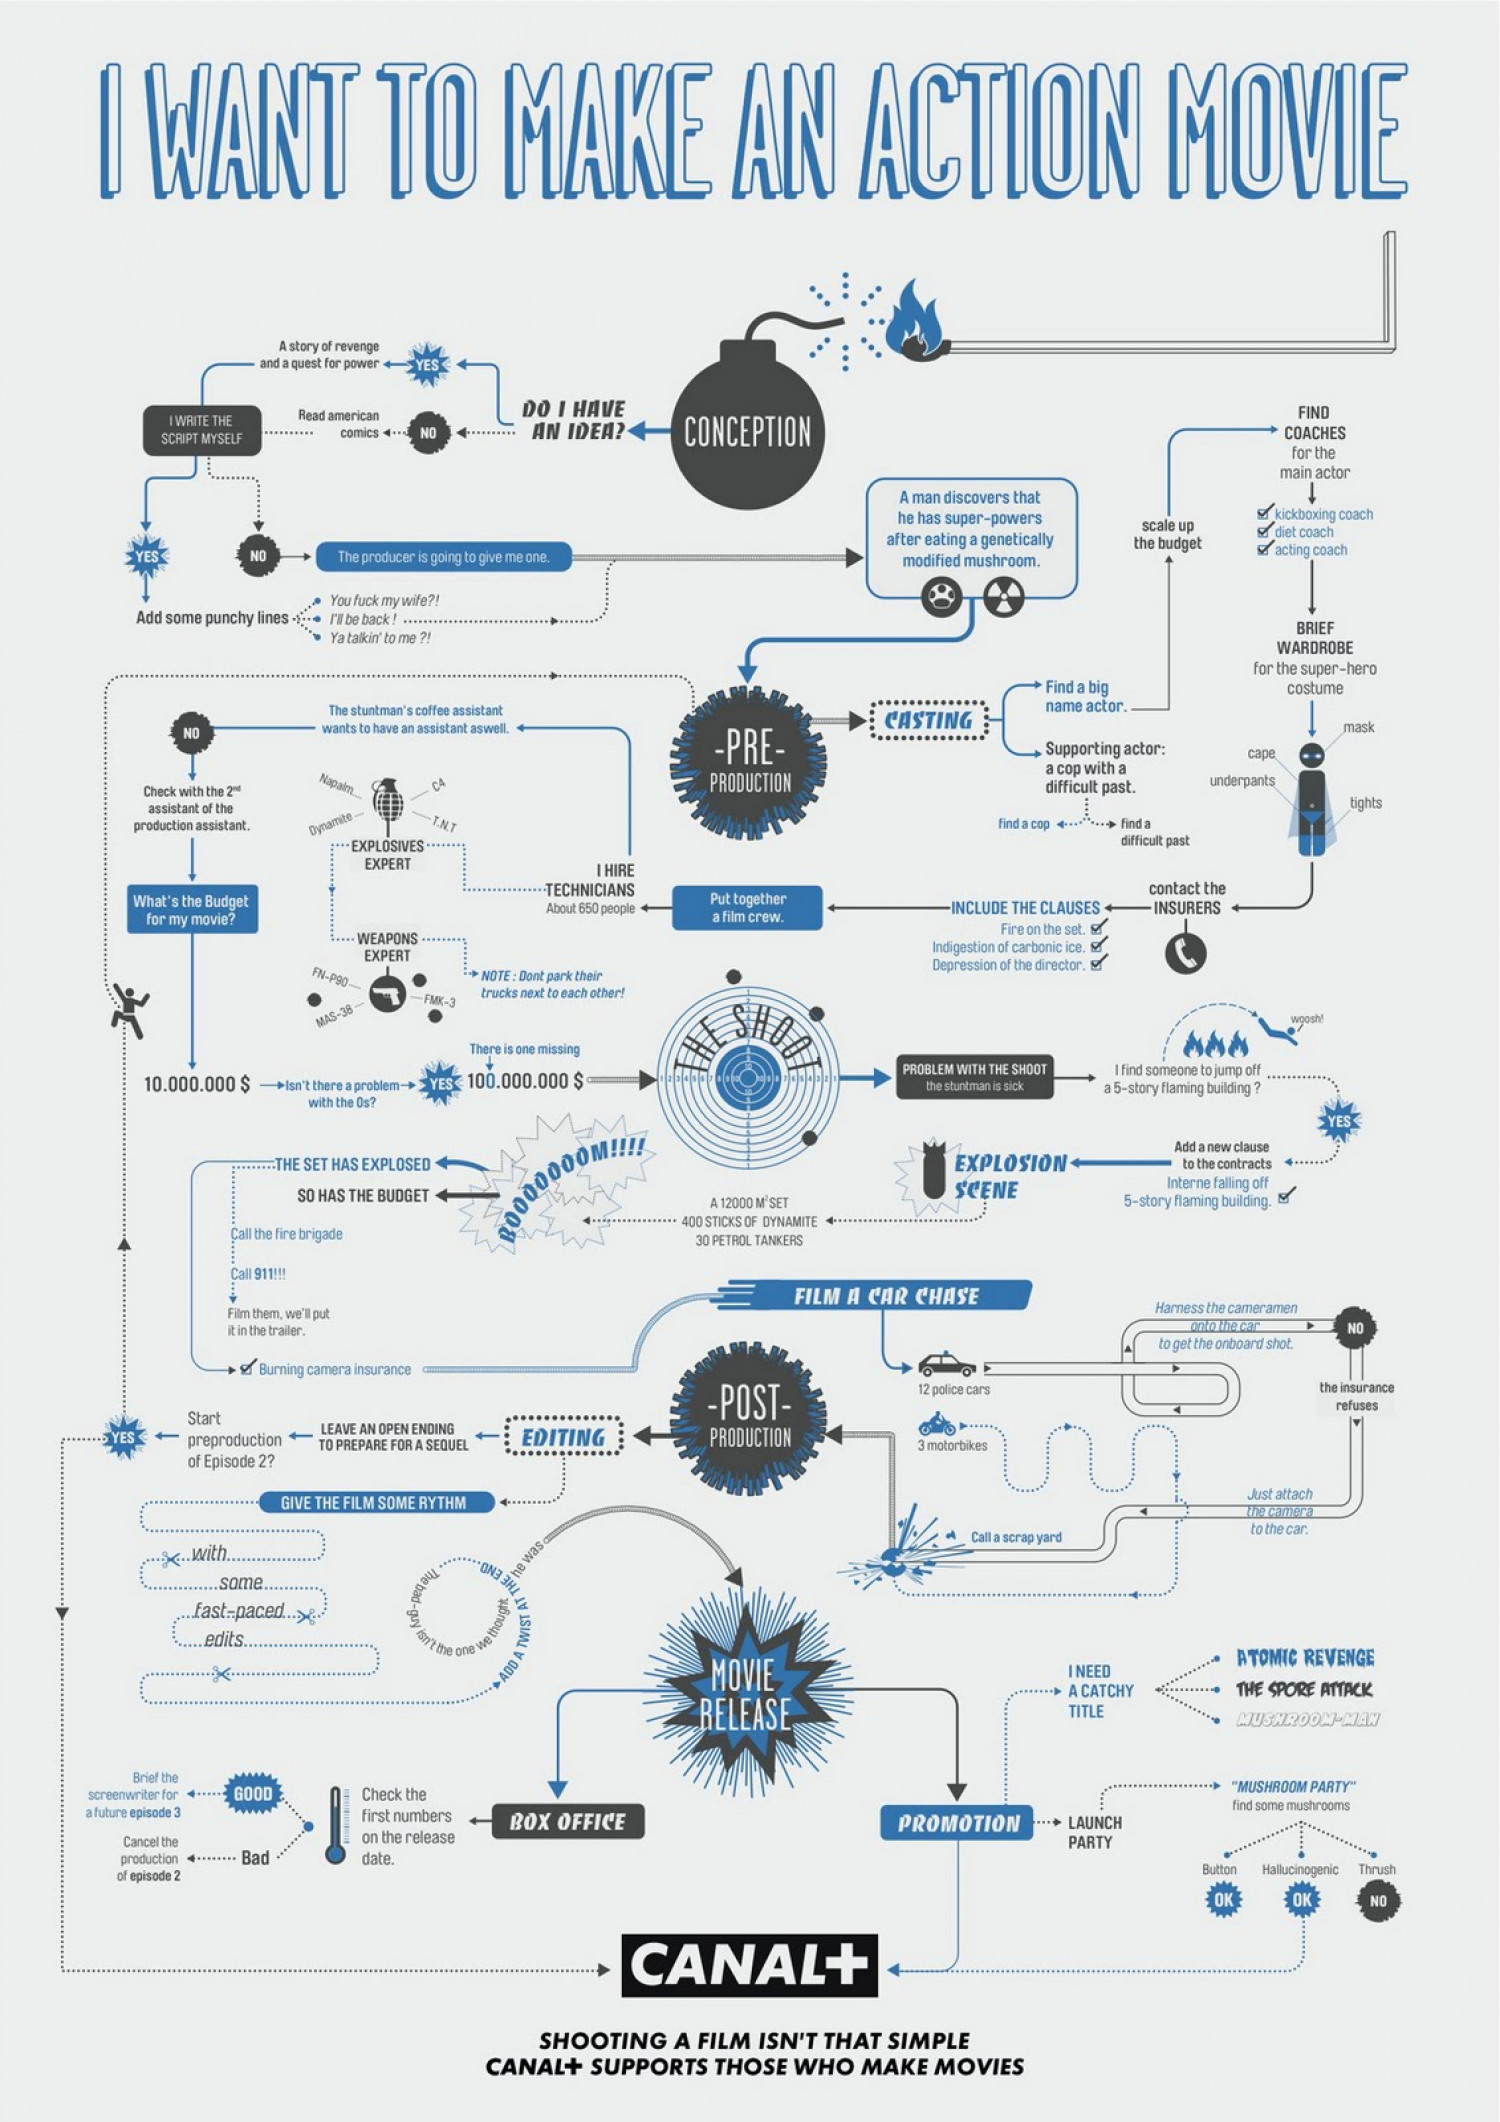 I want to make an action movie Infographic